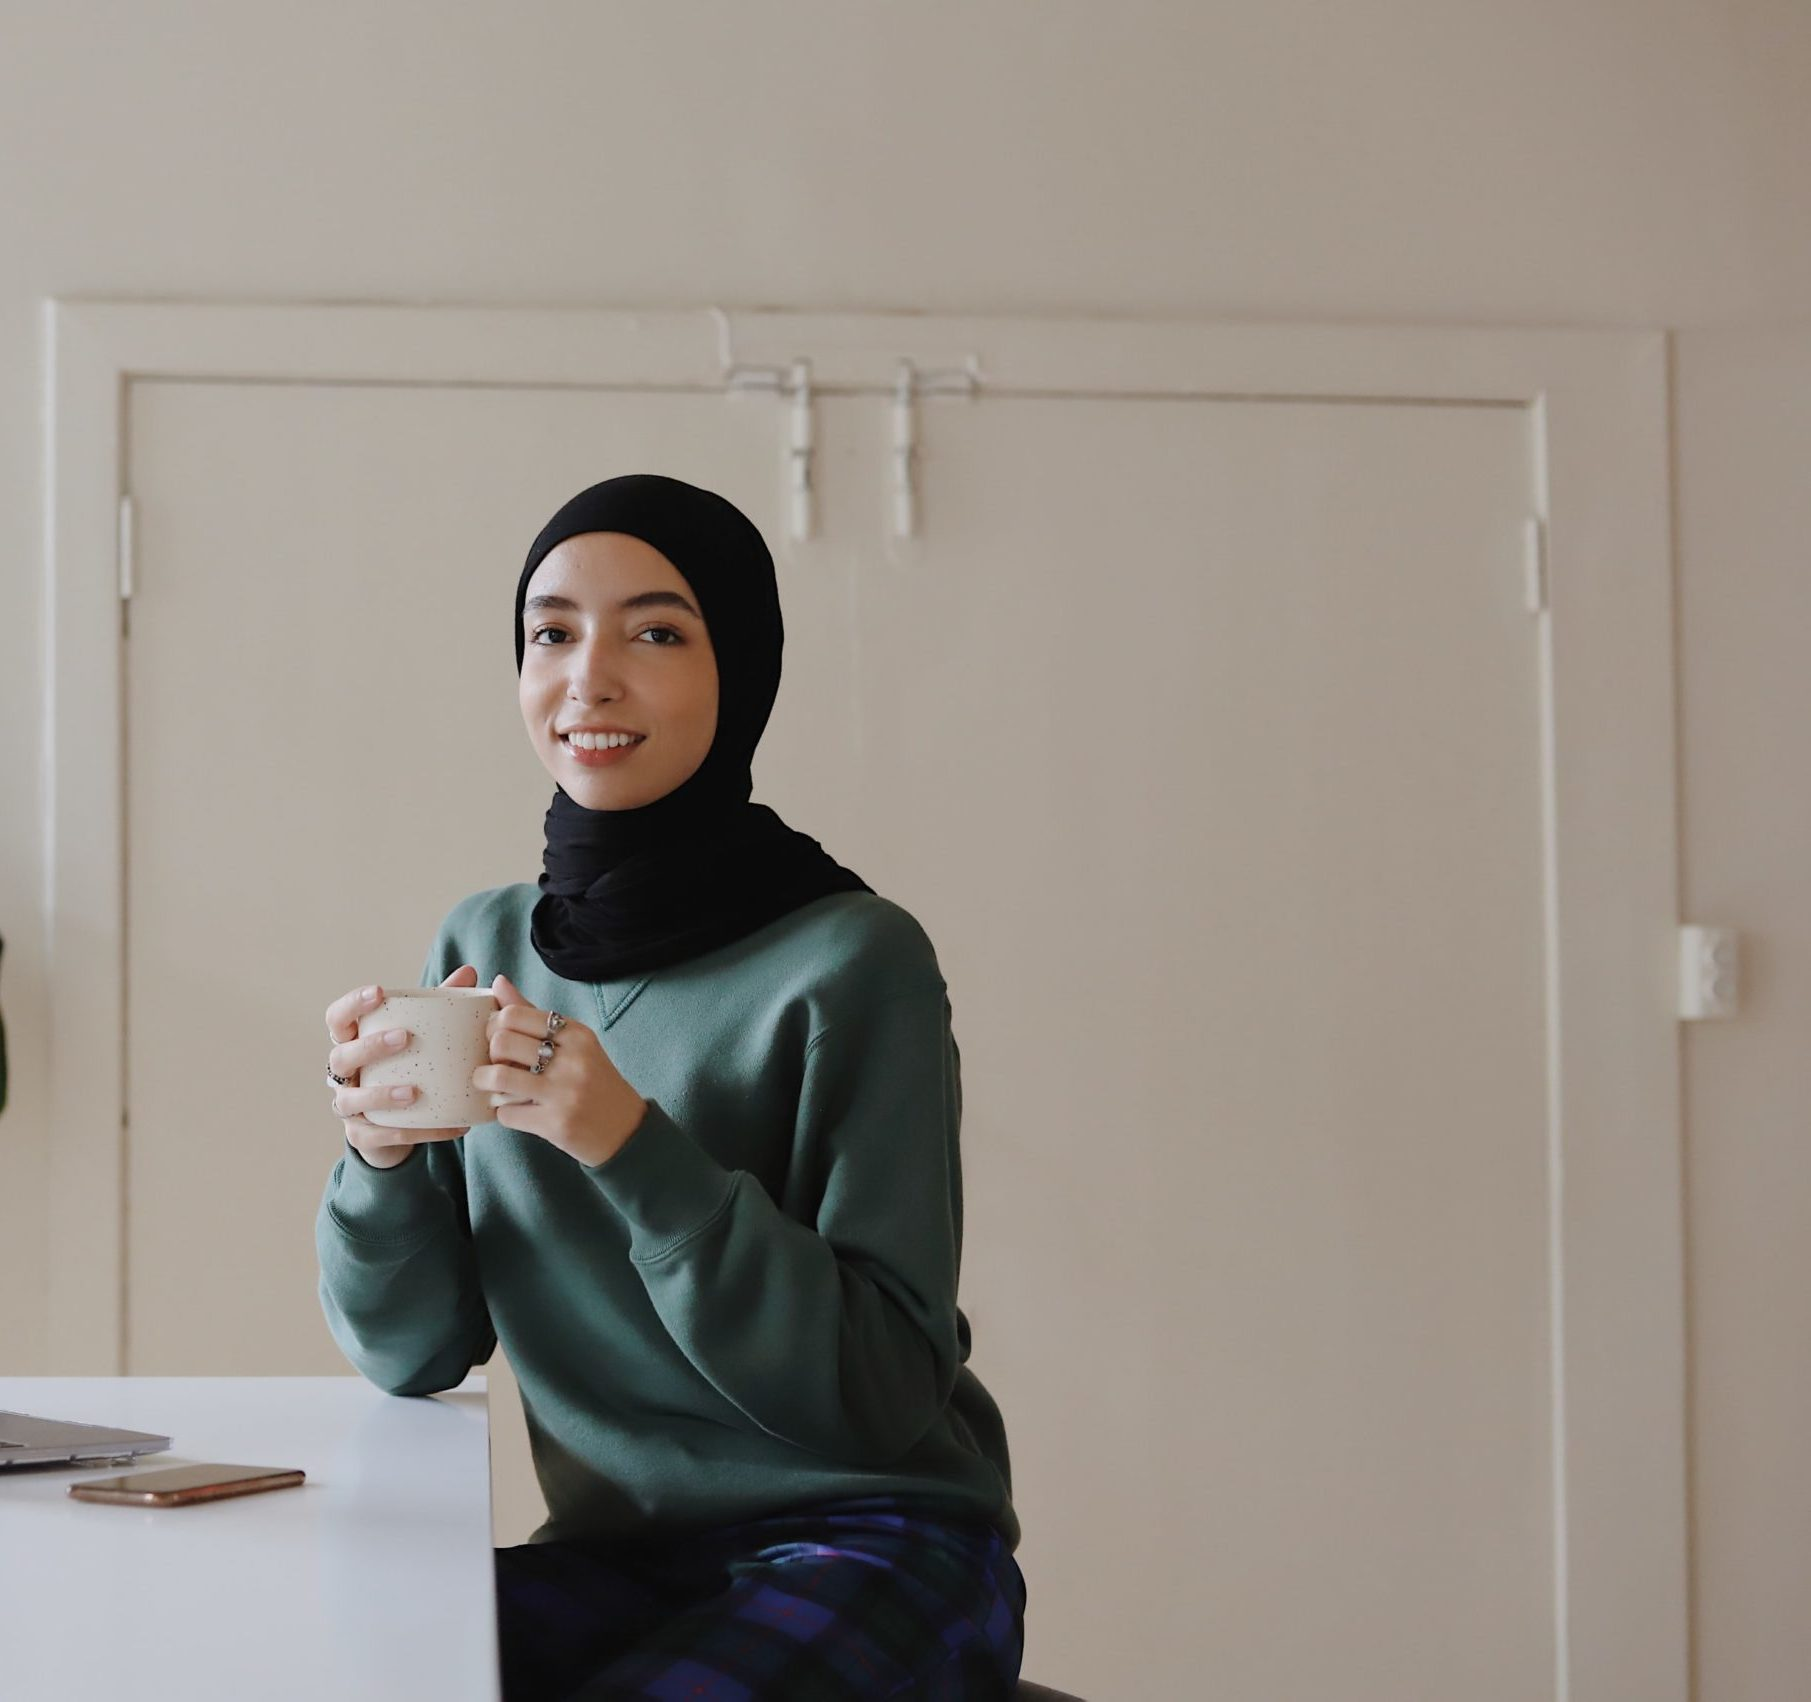 A young woman in a green sweater and a black hijab holding a mug and smiling